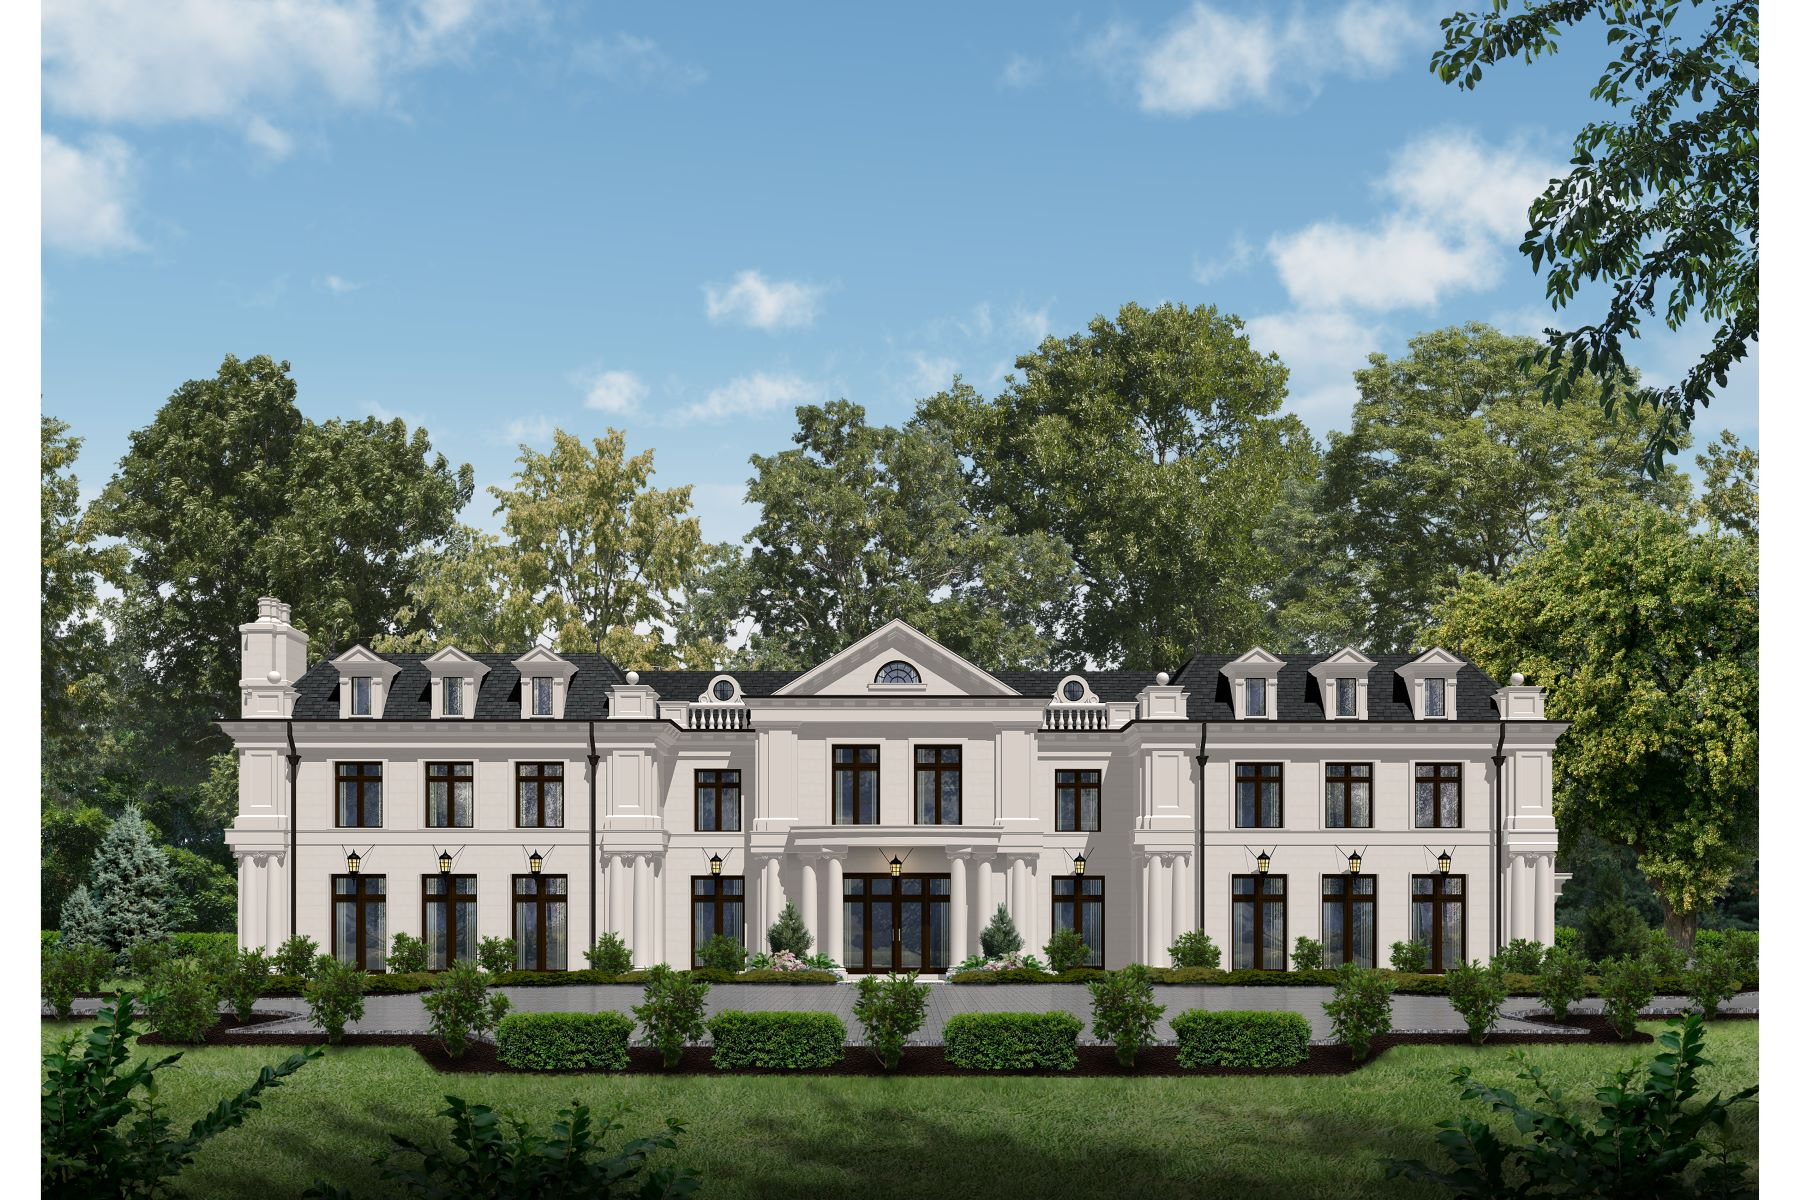 Single Family Home for Sale at Opulent Beverly Hills Inspired Estate 23 Stone Tower Dr., Alpine, New Jersey 07620 United States